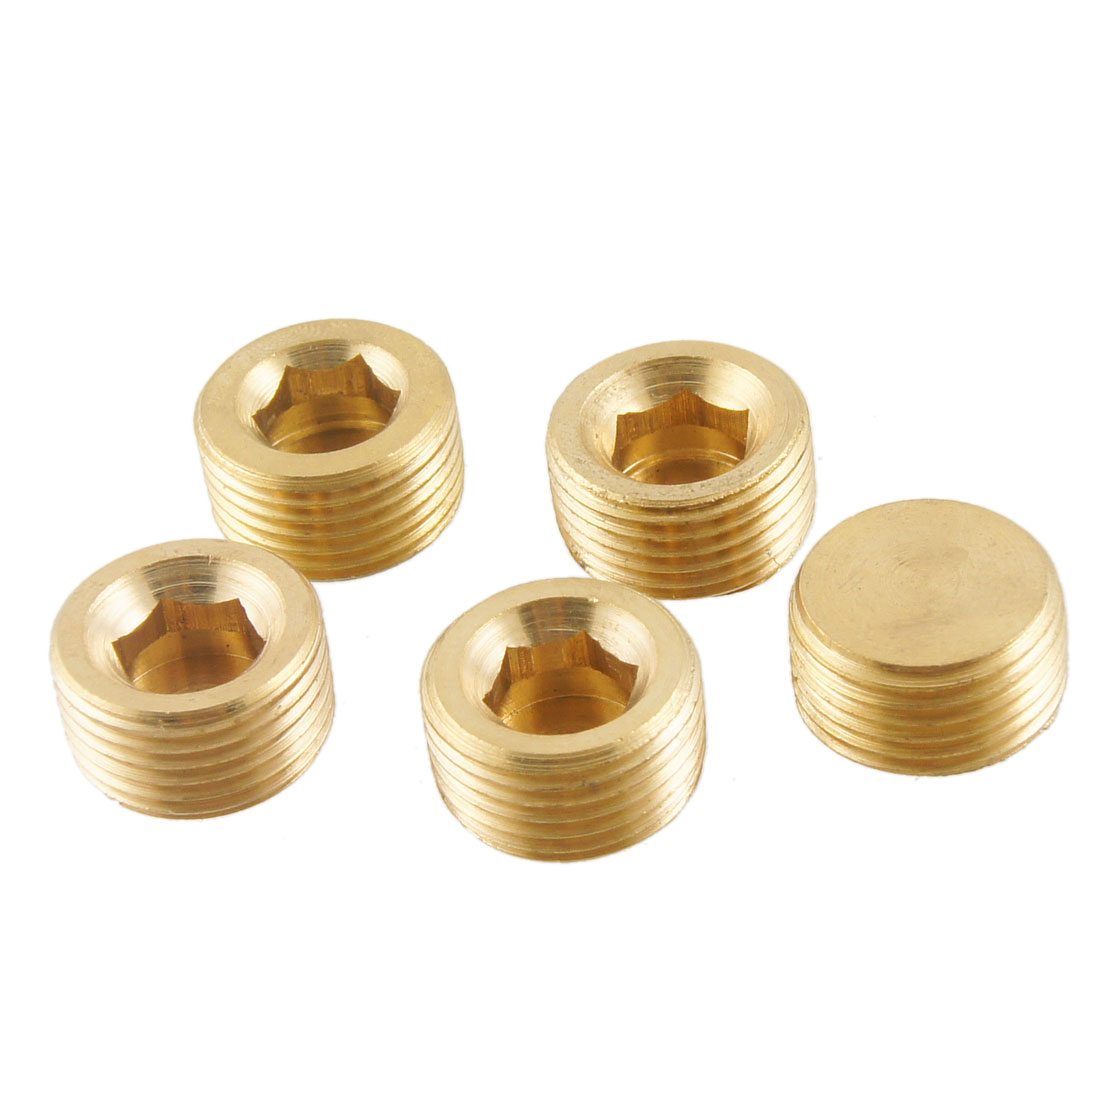 "5 Pcs Brass Internal Hex Head Socket 3/8"" PT Thread Pipe Plug Fitting"